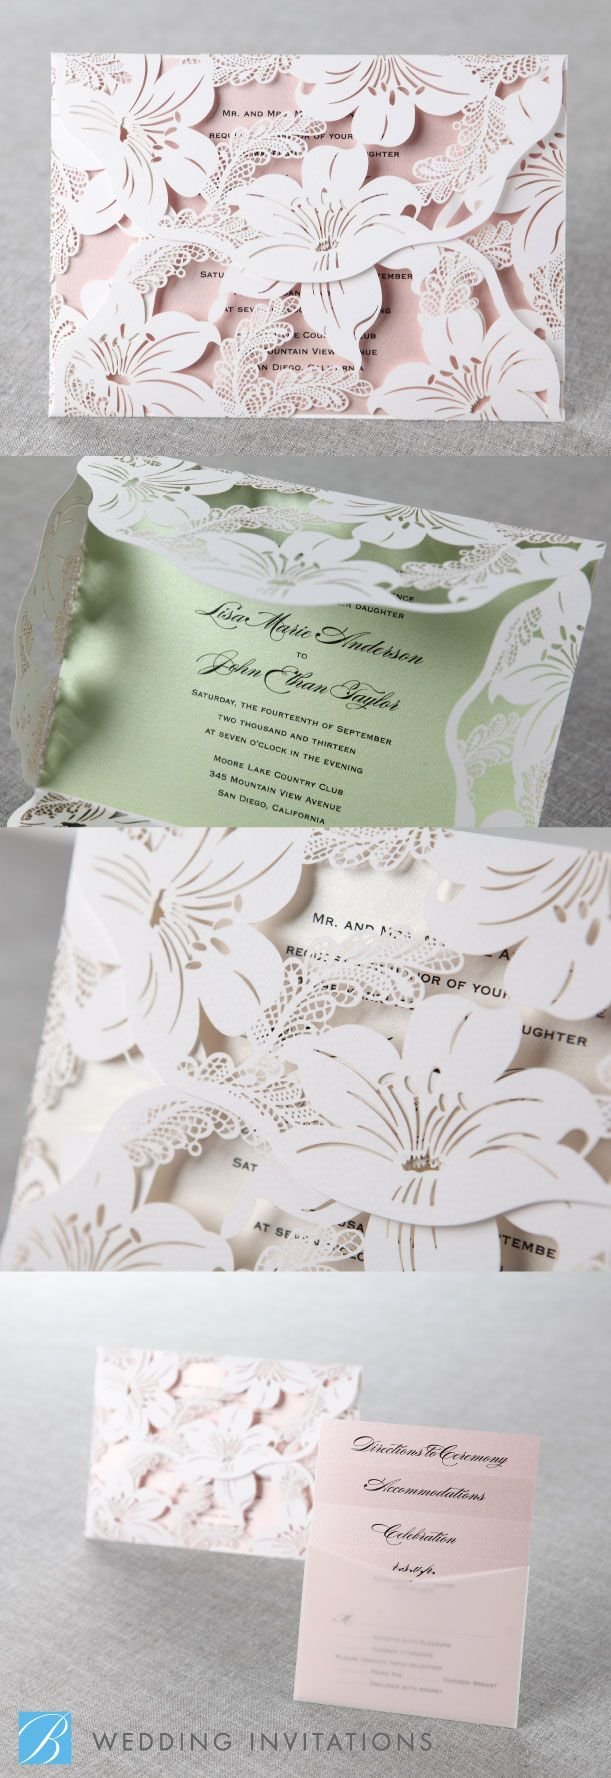 45 Best Wedding Cards Images On Pinterest Bridal Invitations Card